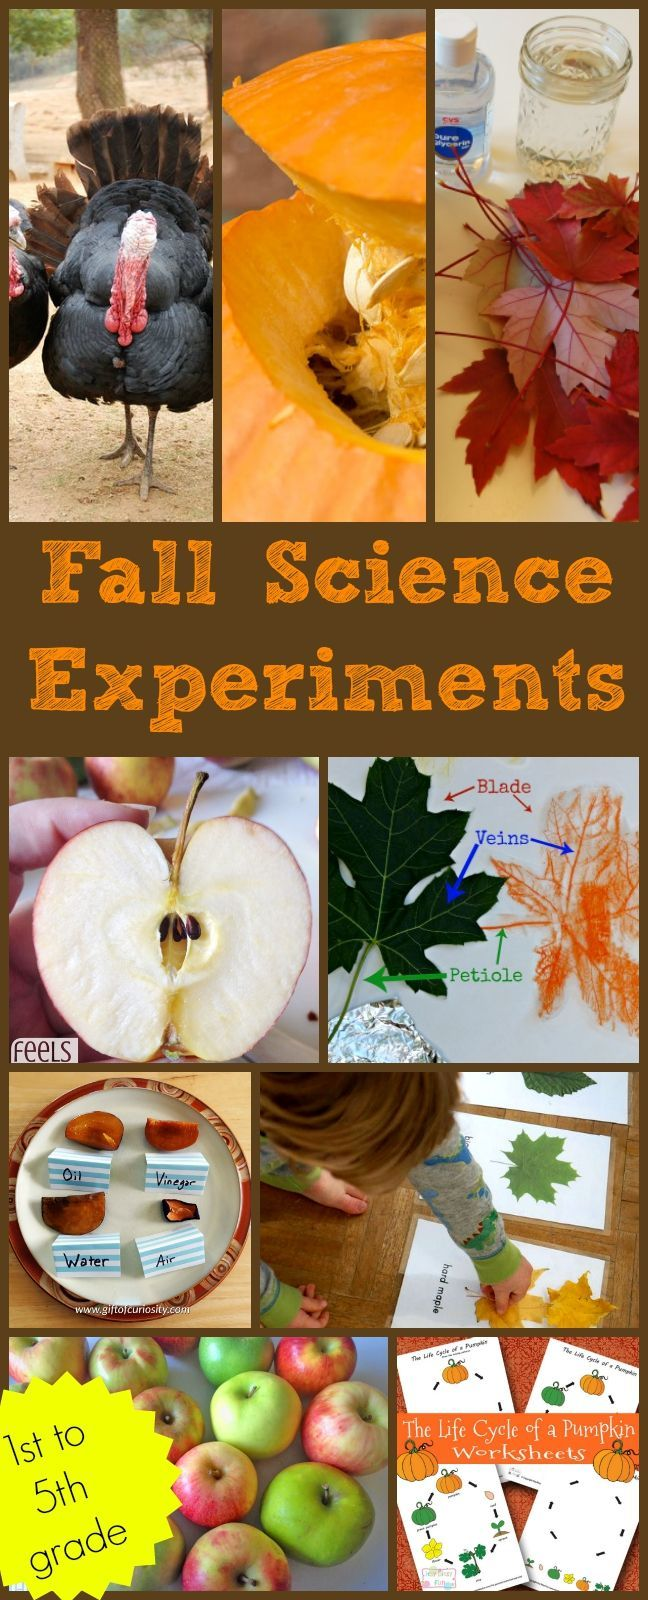 Fall science experiments for 1st grade, 2nd grade, 3rd grade, 4th grade, 5th grade. Apples, leaves, pumpkins, Halloween, Thanksgiving, animals in autumn and more.